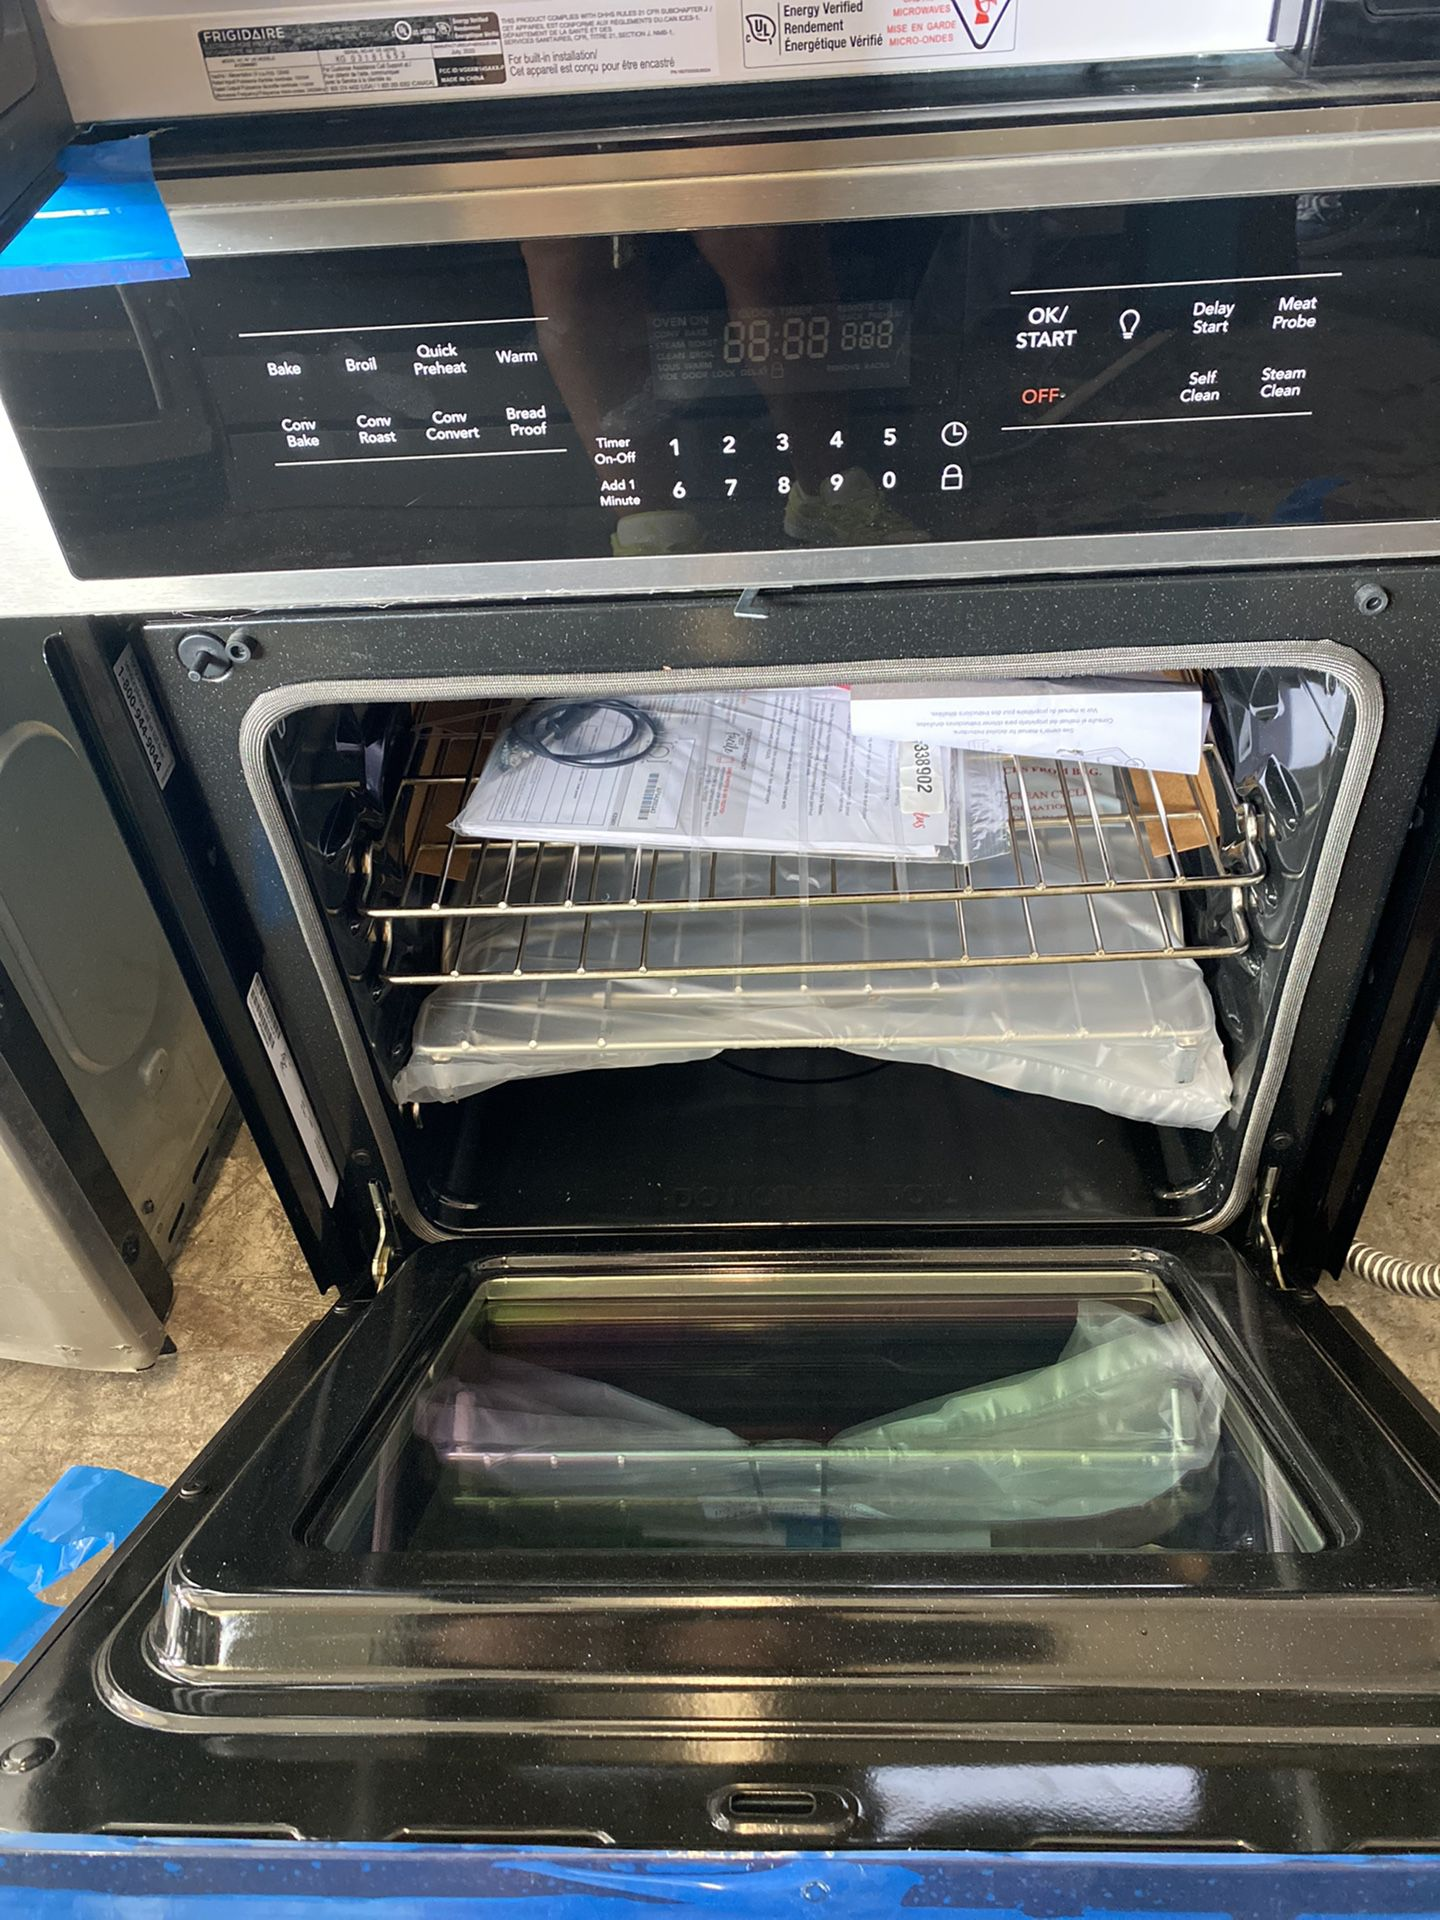 NEW Frigidaire Microwave Oven Combo Electric